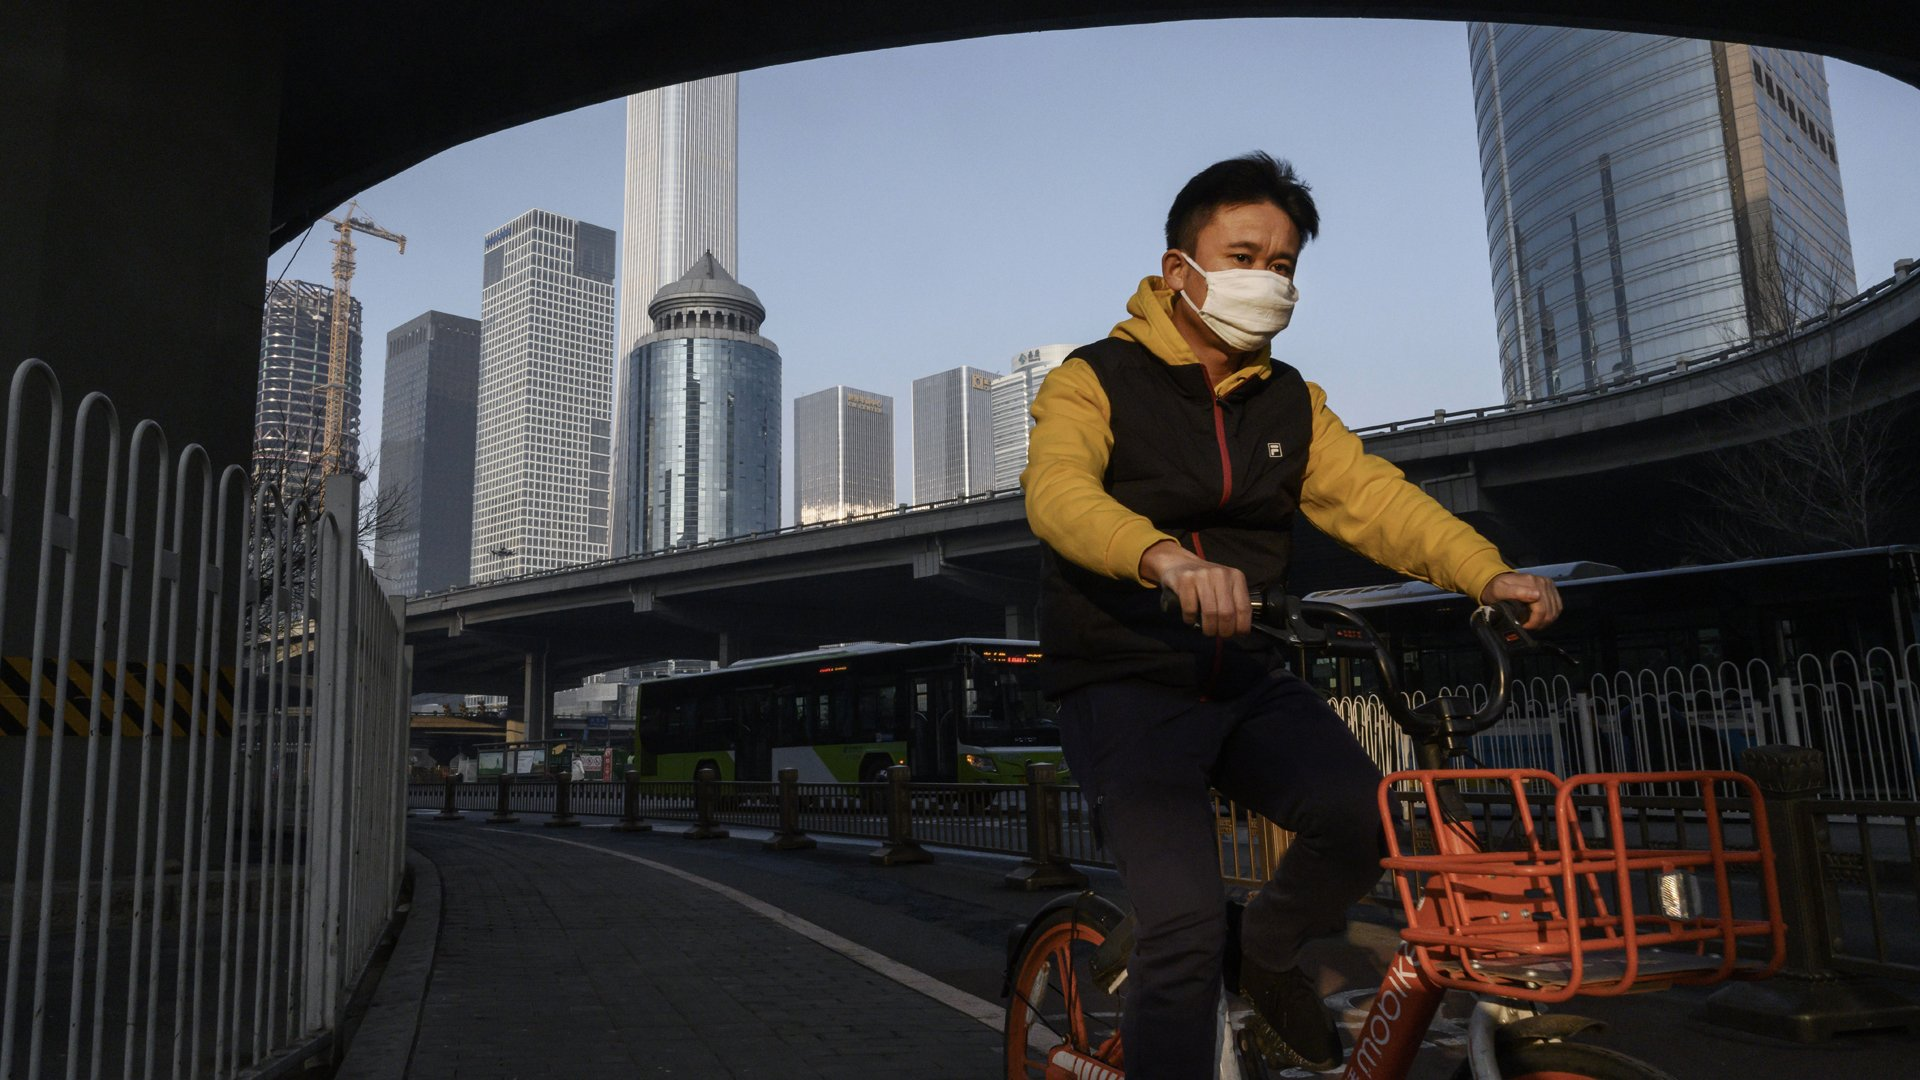 A Chinese man wears a protective mask as he cycles on a quiet road during the usual rush hour period on February 10, 2020 in Beijing, China. (Credit: Kevin Frayer/Getty Images)